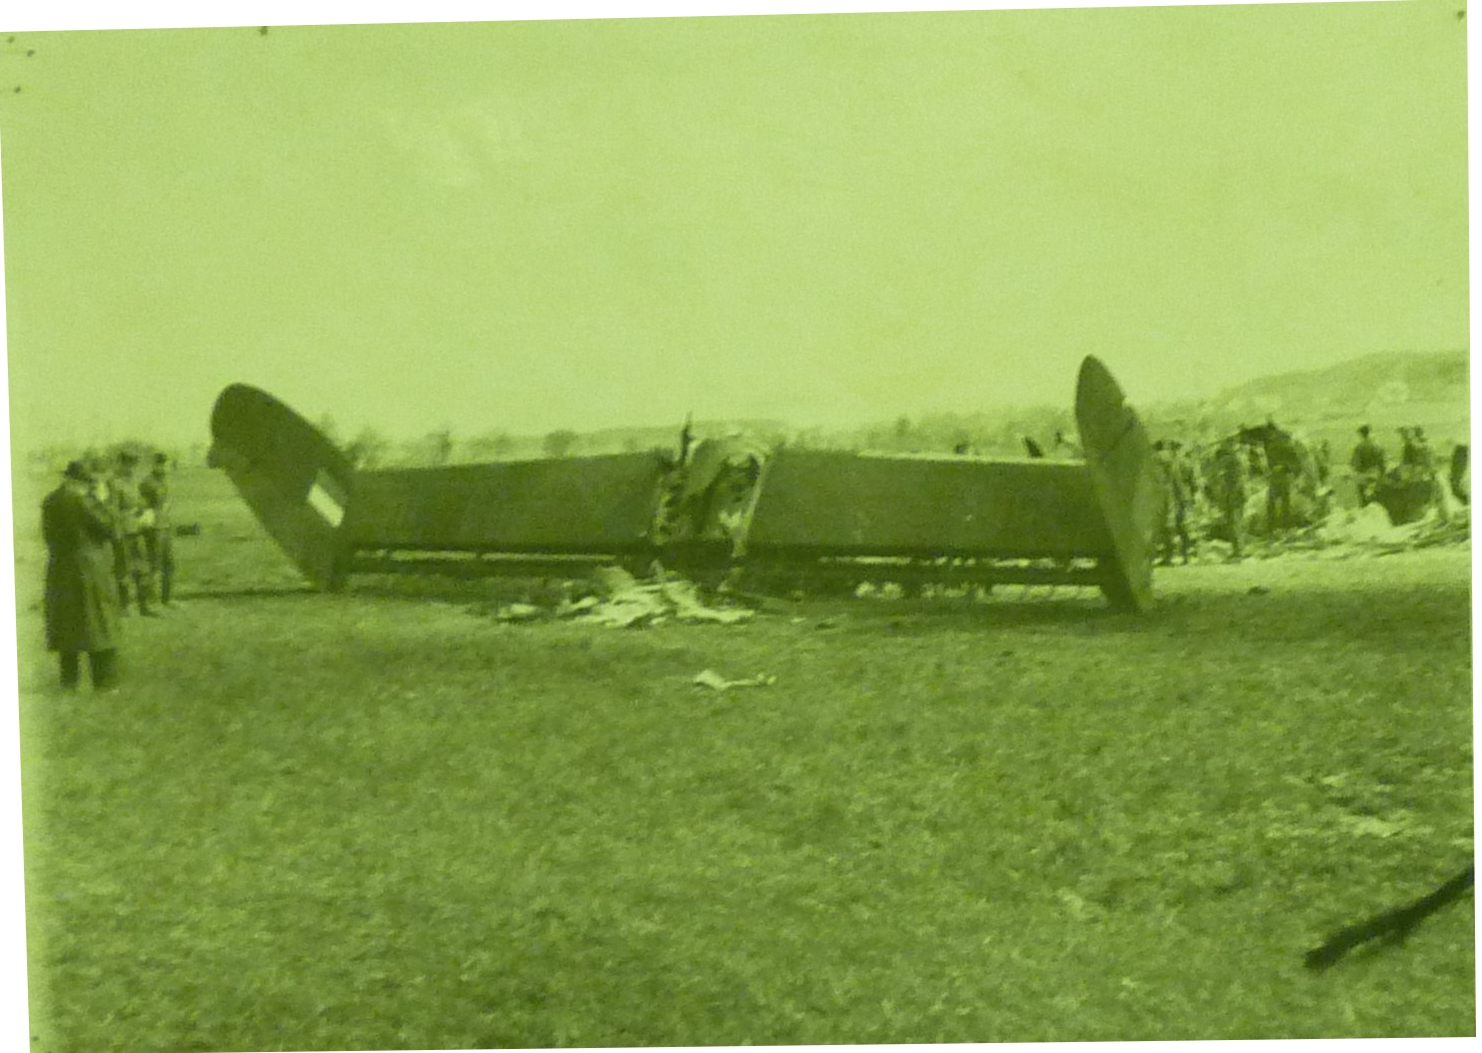 PHOTO: Downed Allied Aircraft investigated by Brooks' 15 Section MREU